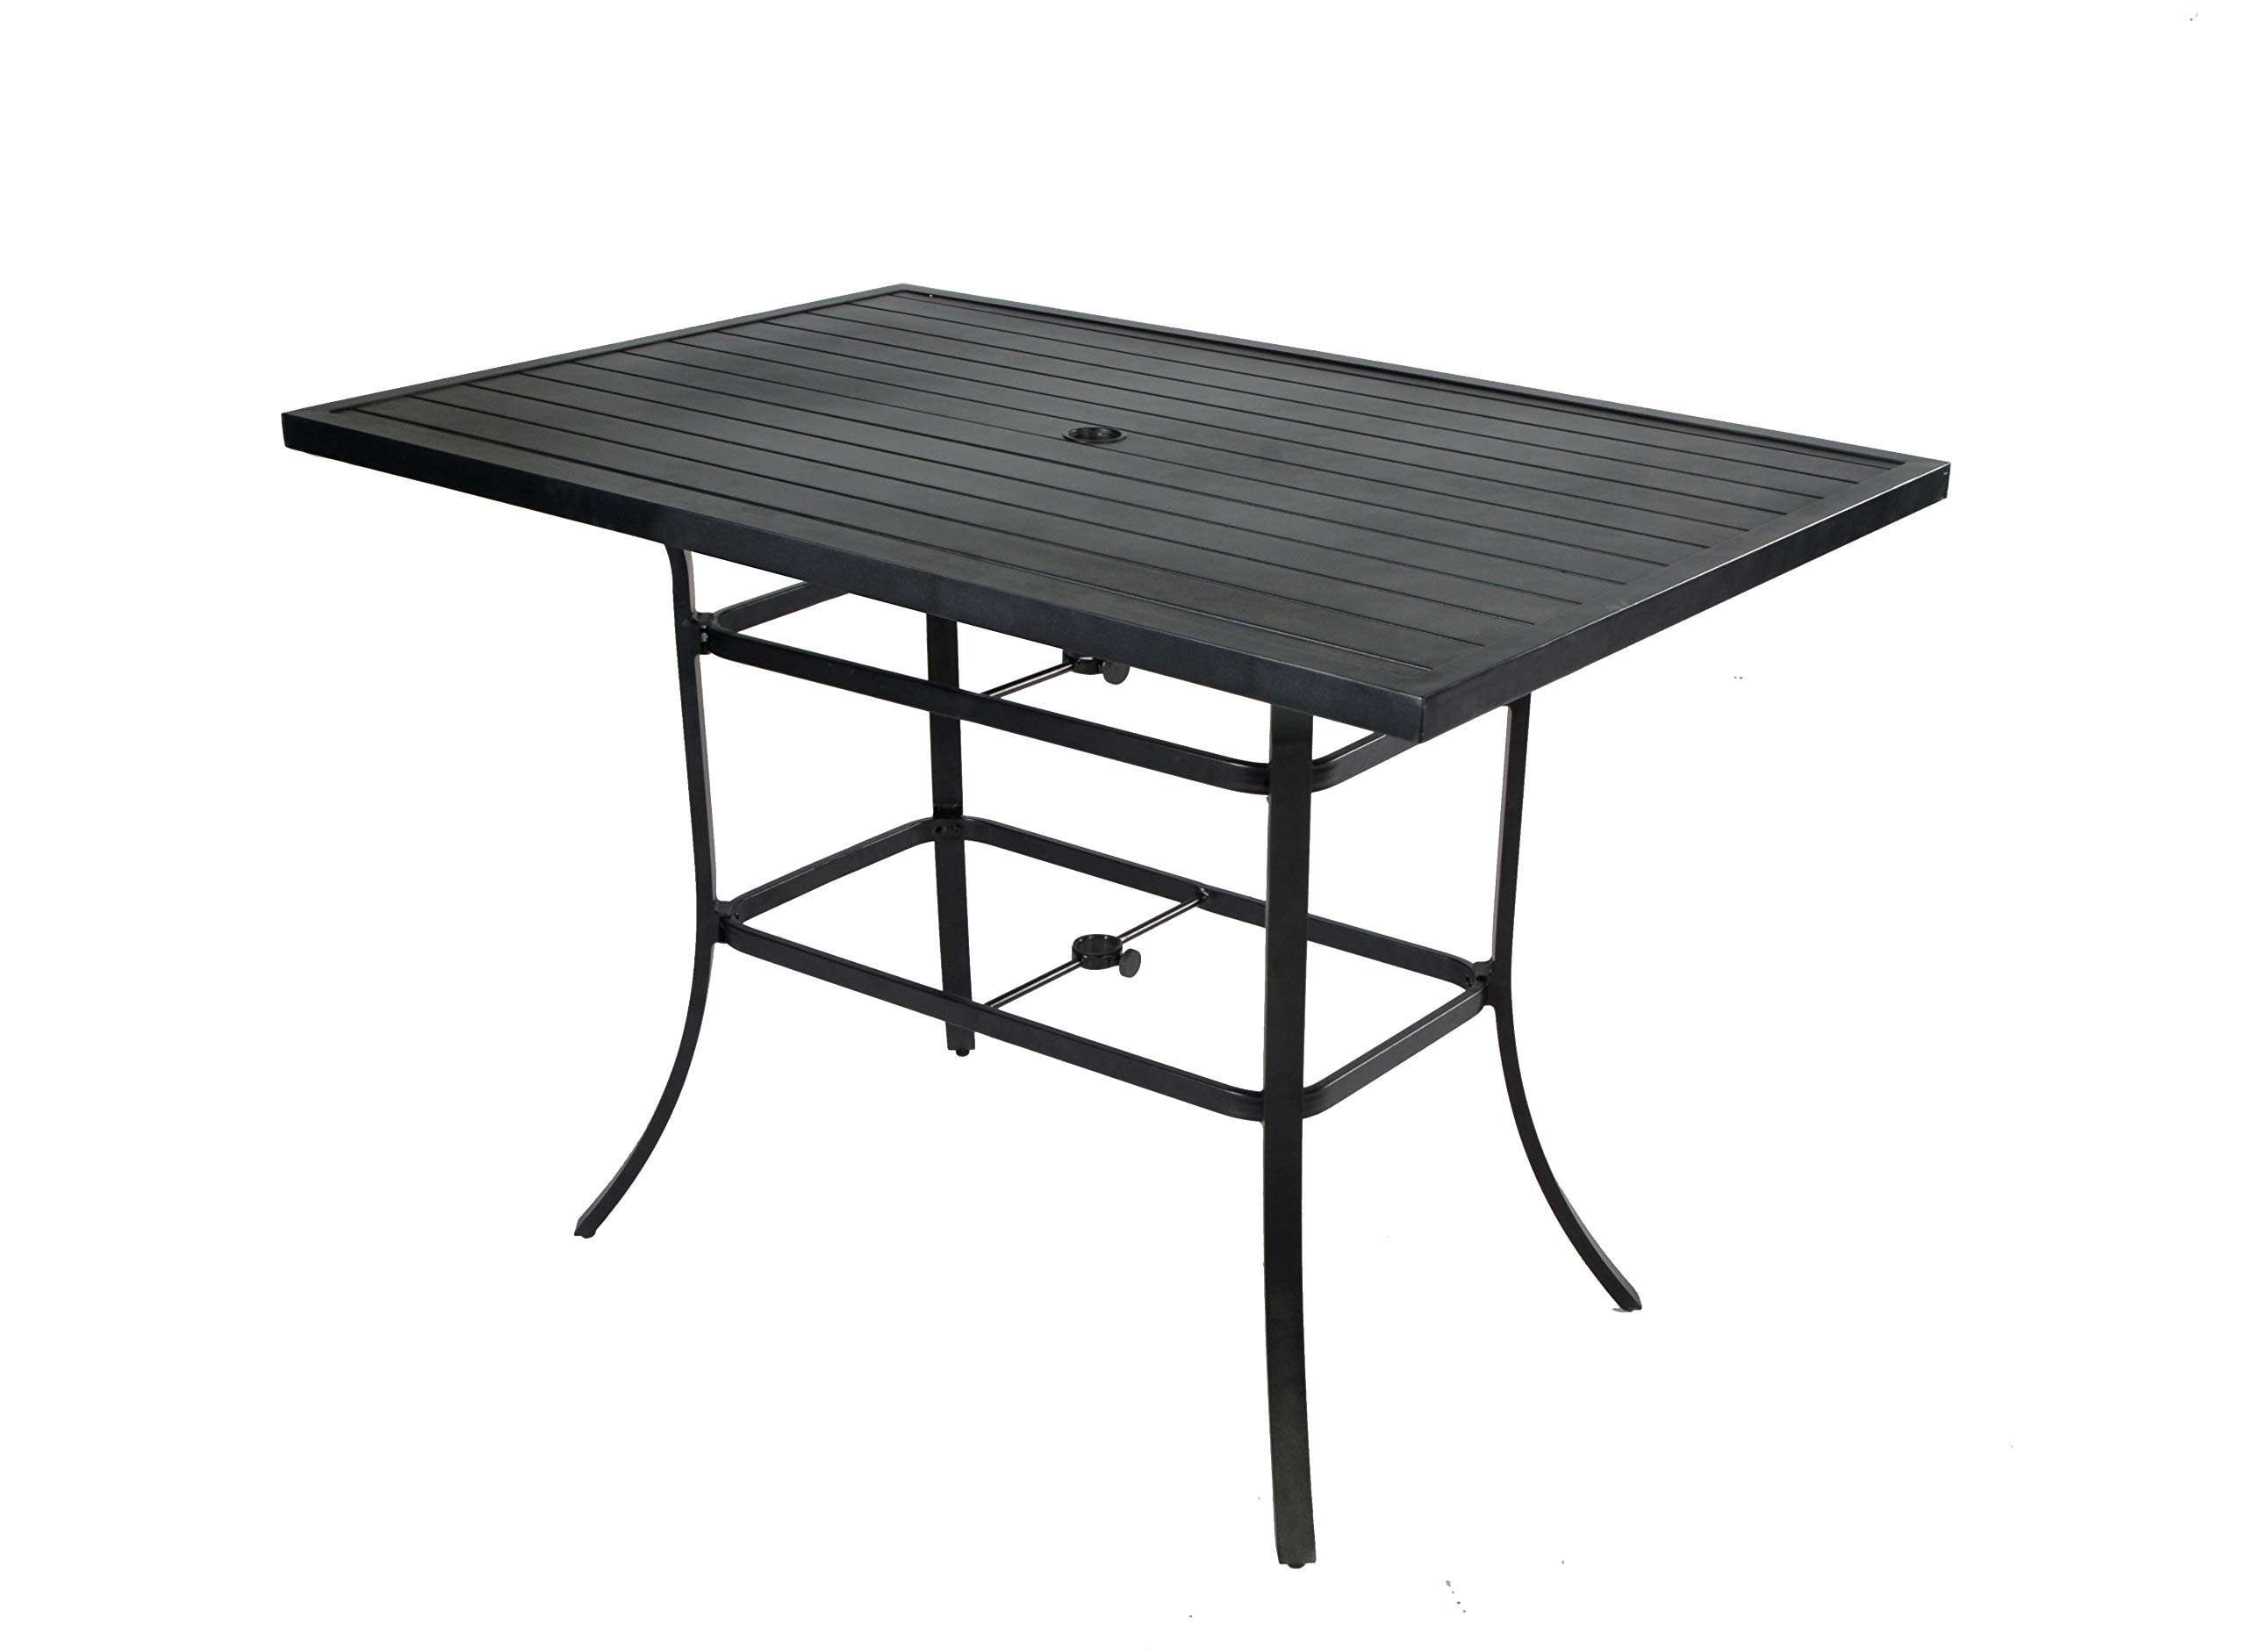 Pebble Lane Living All Weather Rust Proof Indoor/Outdoor Slat Top Rectangular Patio Bar Dining Table with 2'' Umbrella Hole, Powder Coated Aluminum, Black, 60'' L x 40'' W x 41'' H, Seats Up to 6